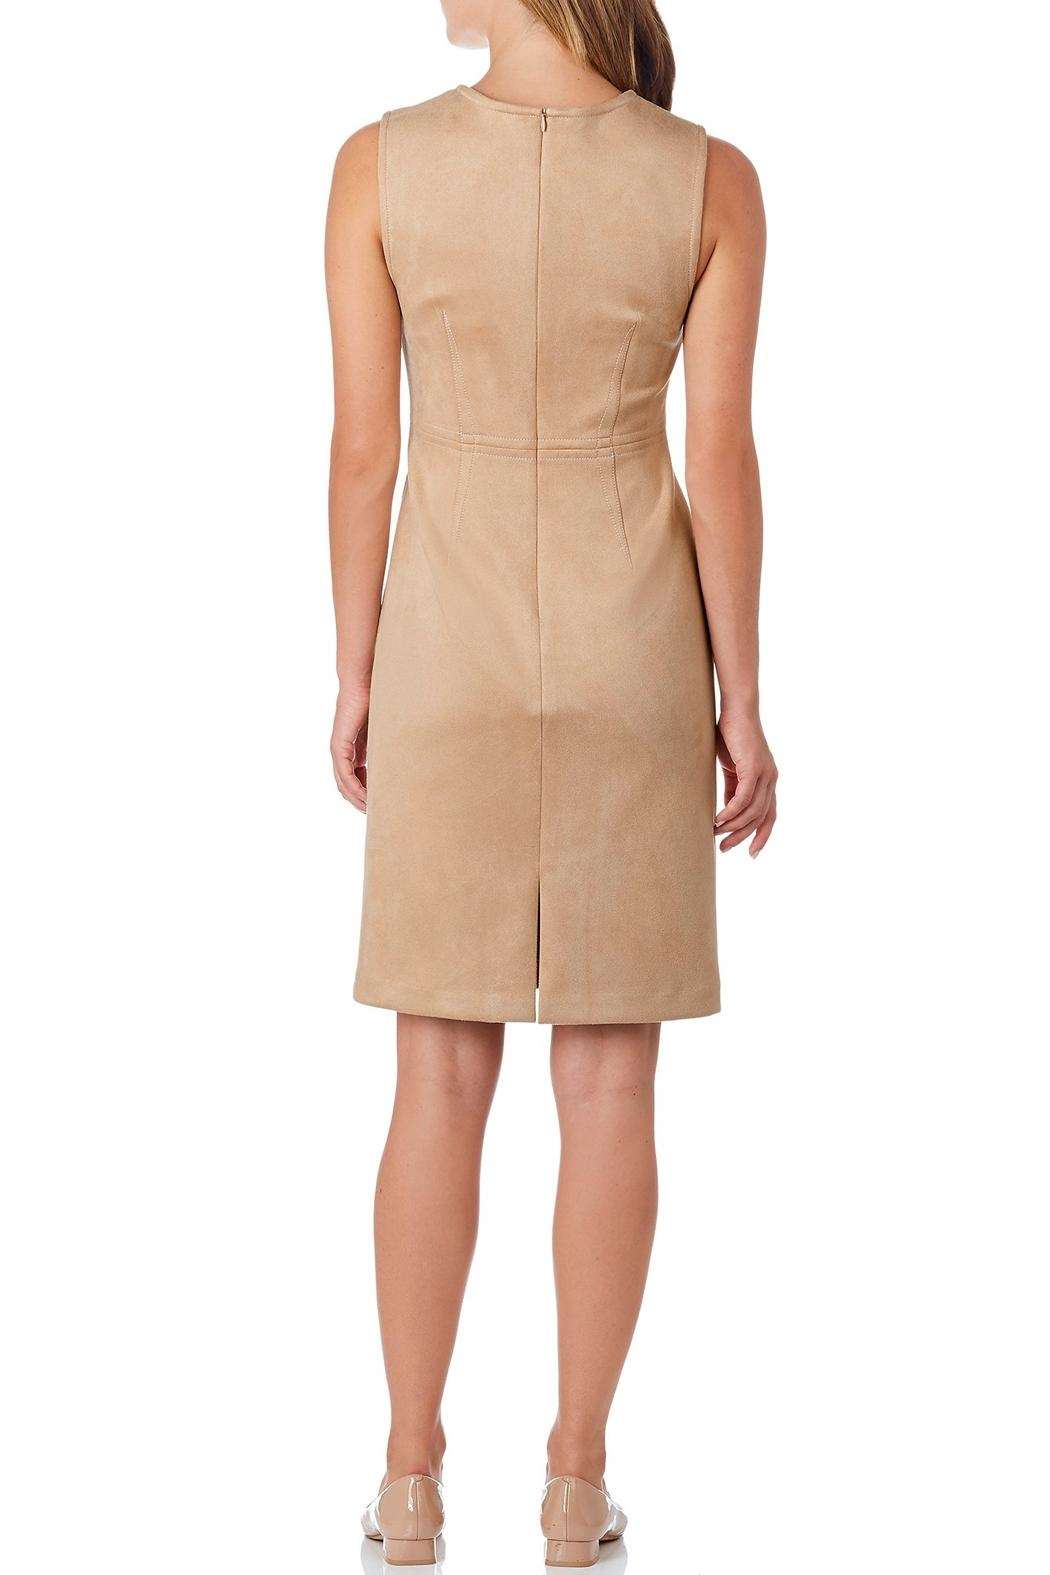 Jude Connally Julia Faux-Suede Sheath-Dress - Front Full Image